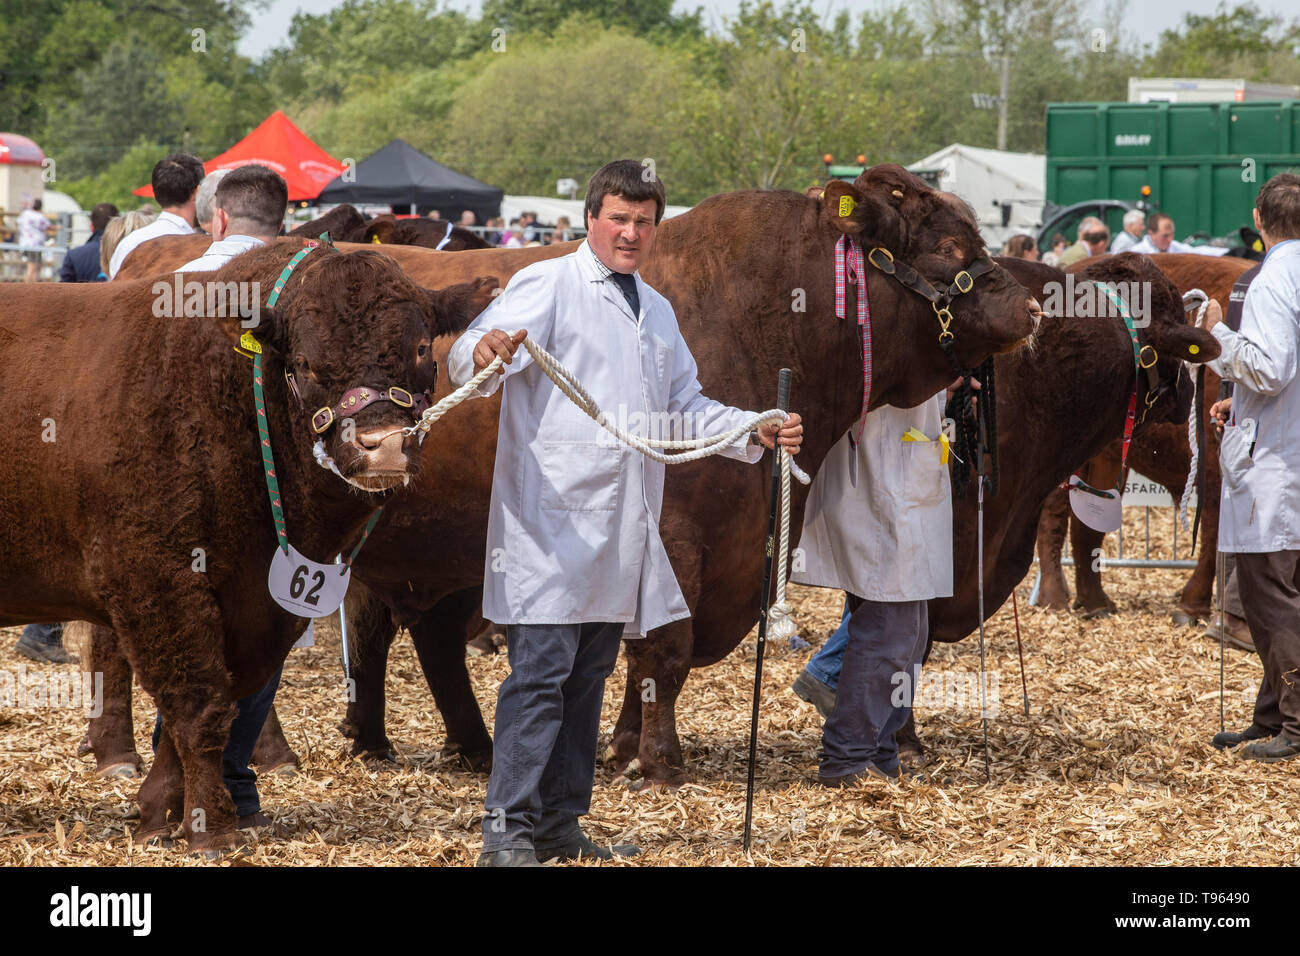 Herdsman with cattle driving stick and Ruby Red Devon bull at the Devon County Show, 2019 Stock Photo